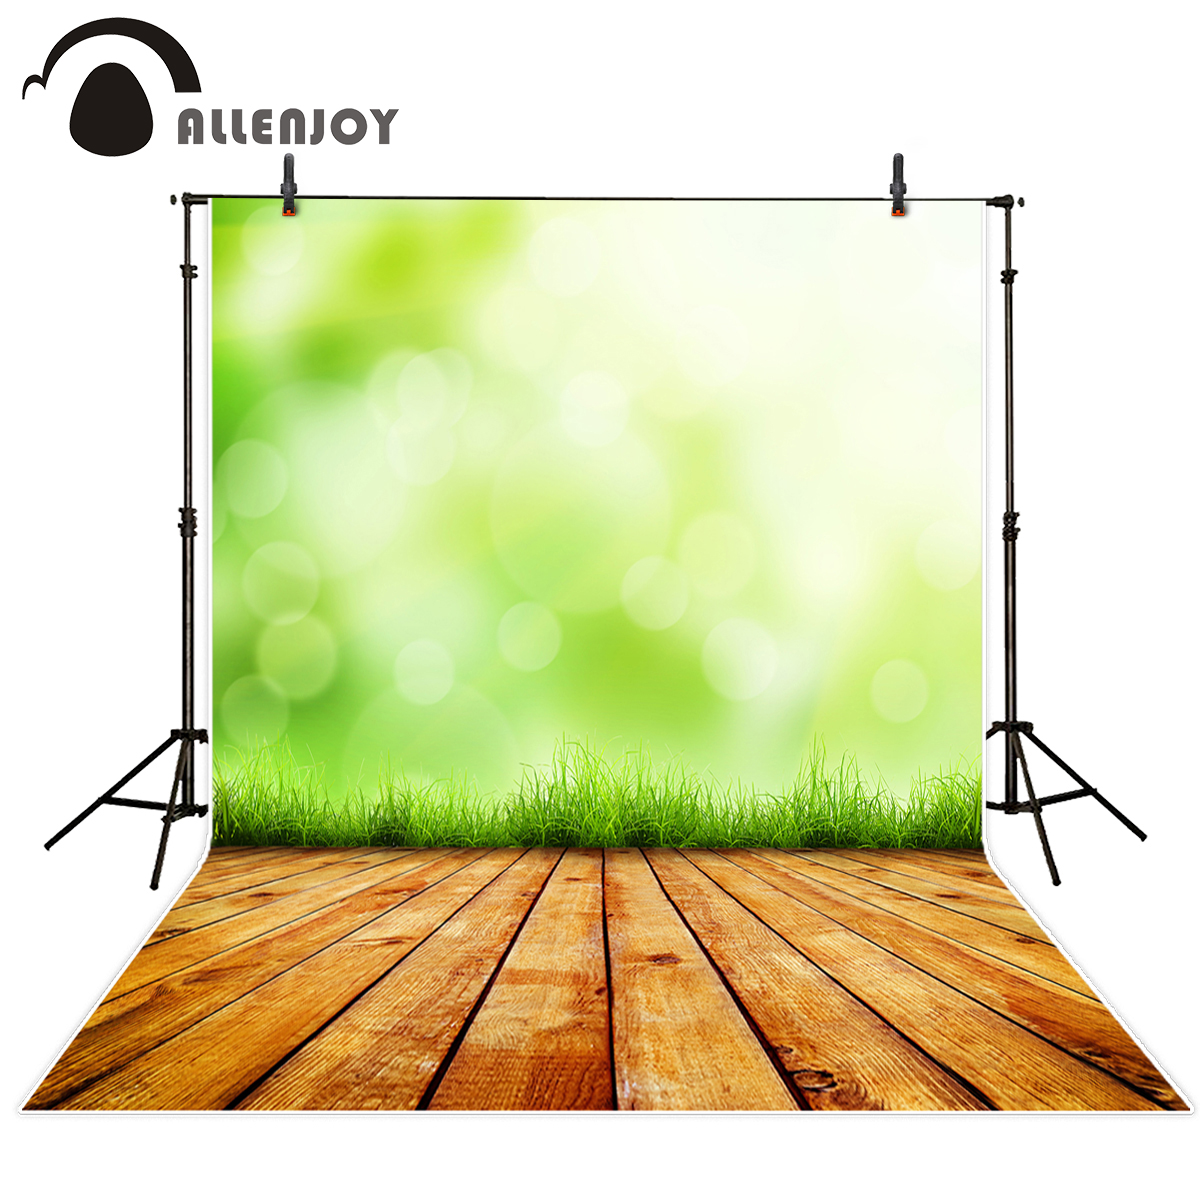 Allenjoy photography backdrops green grass bokeh sunlight wood floor photo background spring natural fotografia props photocall